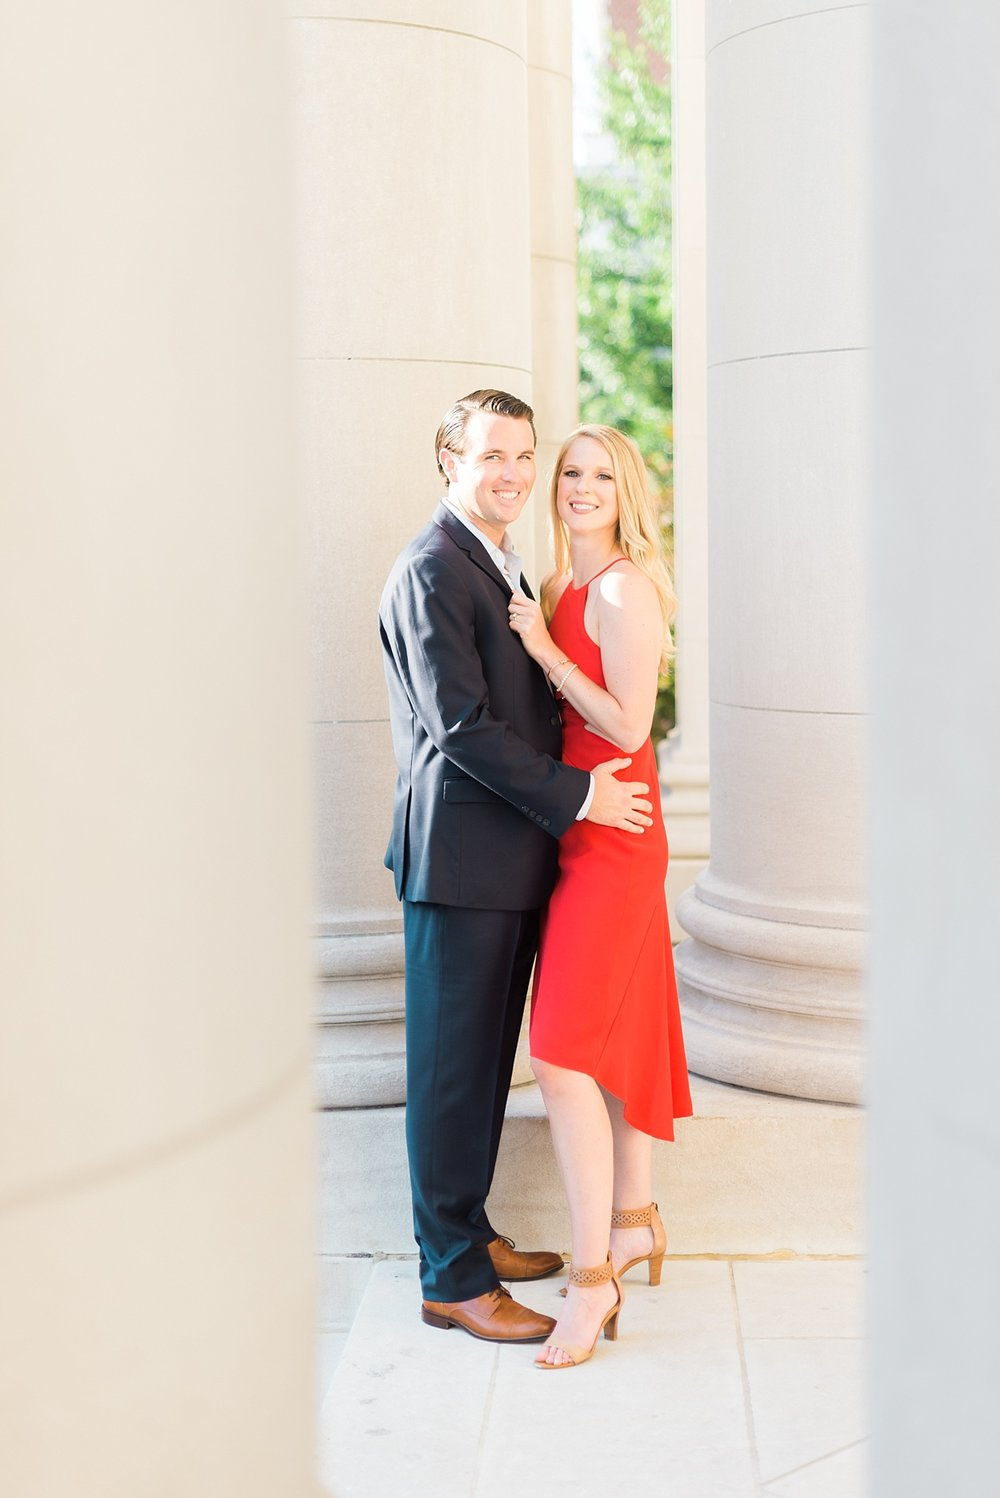 Kimberly Florence Photography_Belvedere Co & Events_Baltimore Wedding_Maryland Wedding Photographer_Virginia Wedding Photographer_The Belvedere_Kelsey and Colin Dixon_0040.jpg